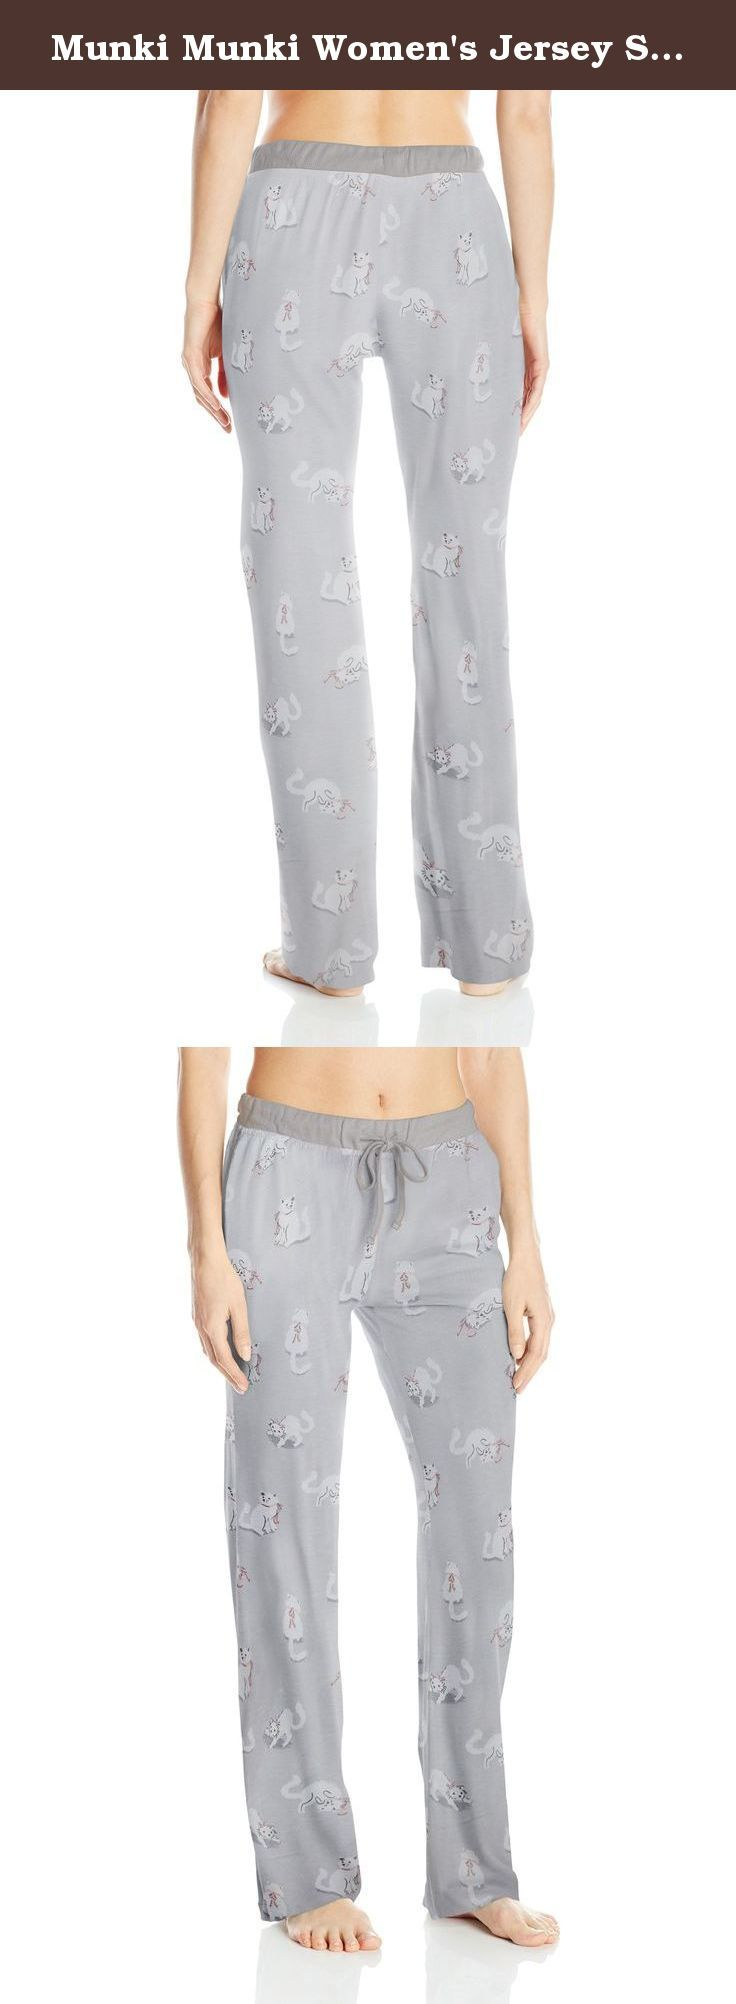 Munki Munki Women's Jersey Slim Pj Pants with Rib Waistband, Grey Cats, XX-Large. Luxurious jersey pants with a whimsical print. Pants have an elastic waistband with a rib knit drawstring and side pockets.